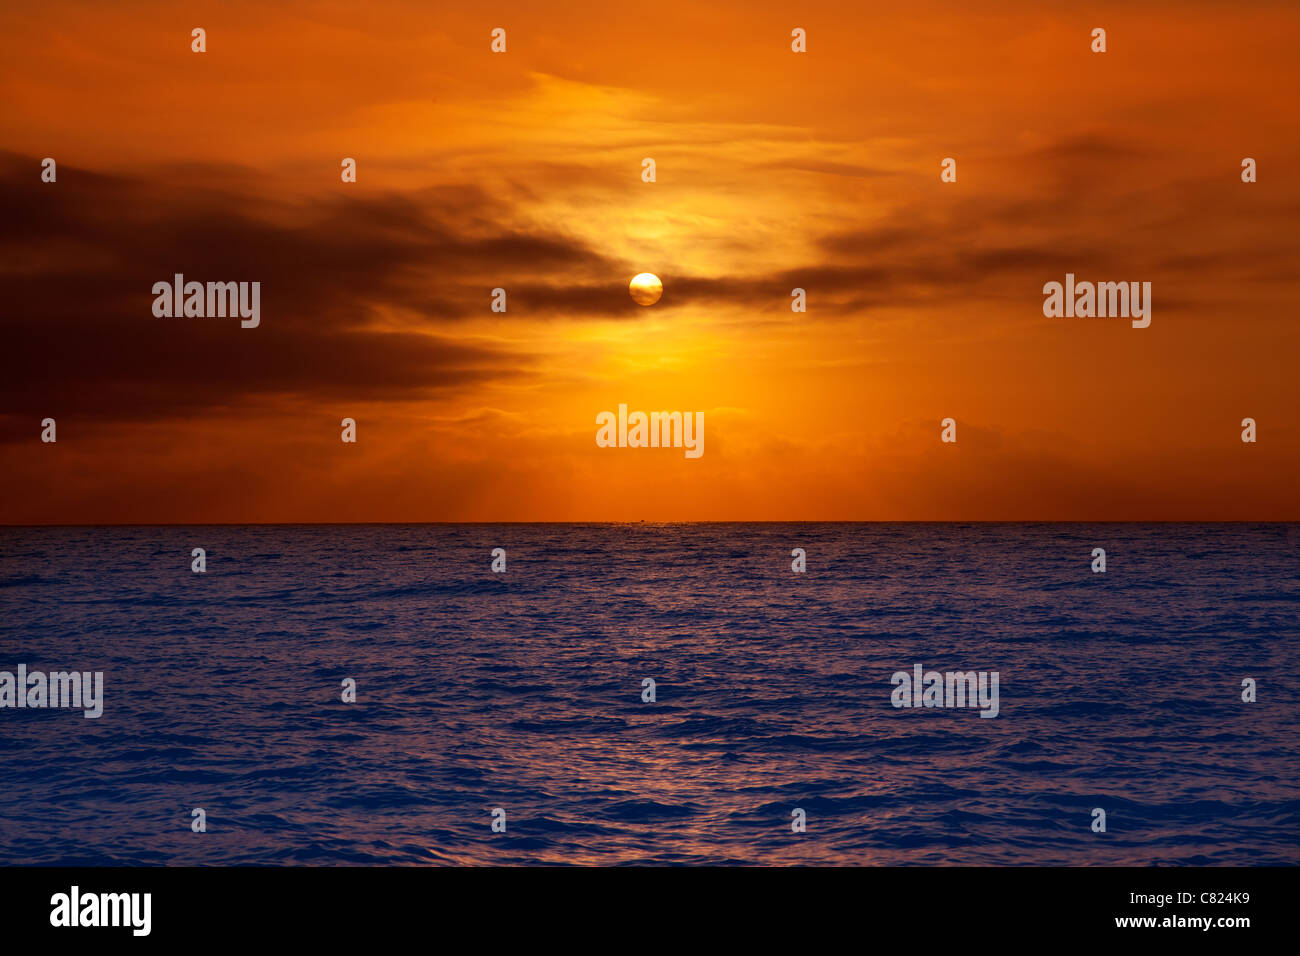 golden sunrise with sun and clouds over blue Mediterranean sea - Stock Image